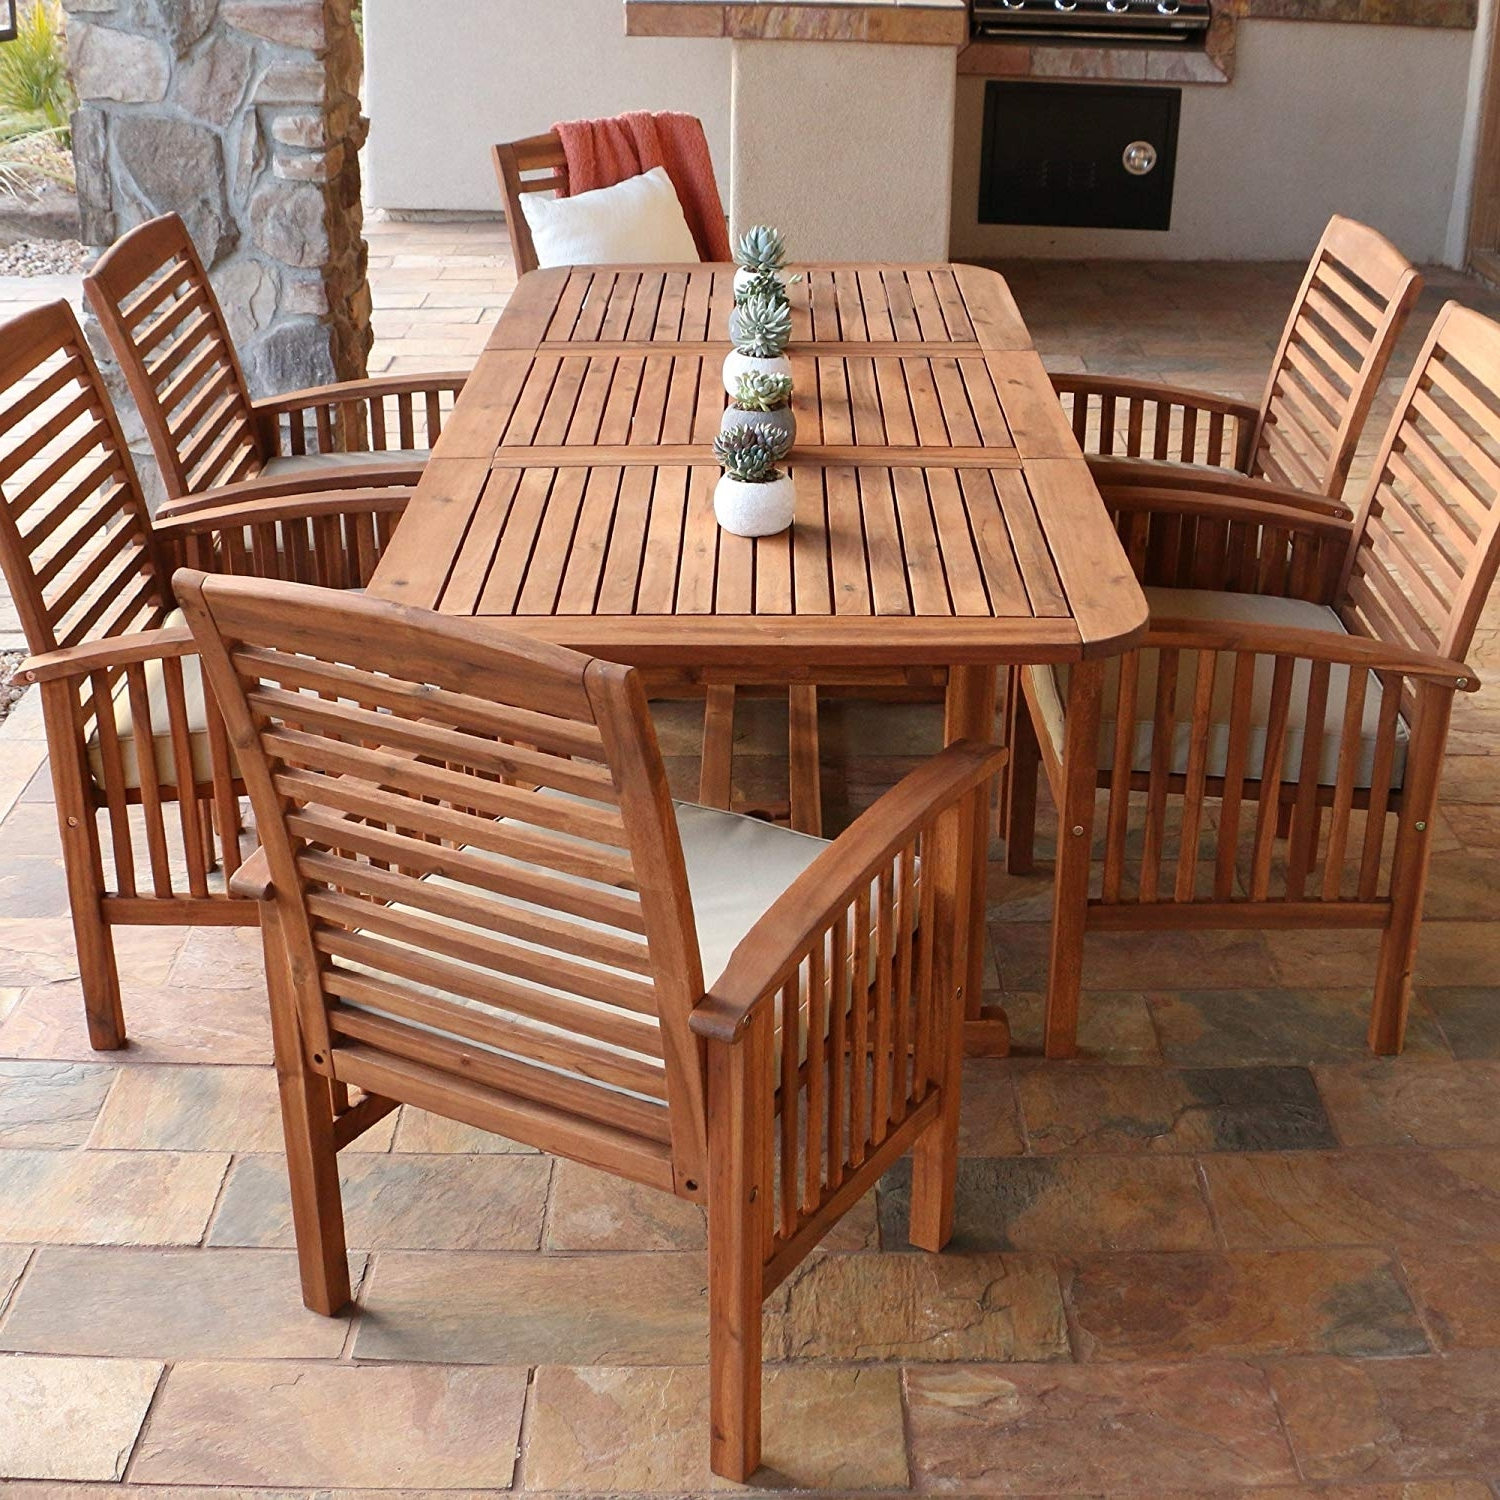 Outdoor Dining Table And Chairs Sets Pertaining To Well Liked Amazon: Walker Edison Solid Acacia Wood 7 Piece Patio Dining Set (View 14 of 25)